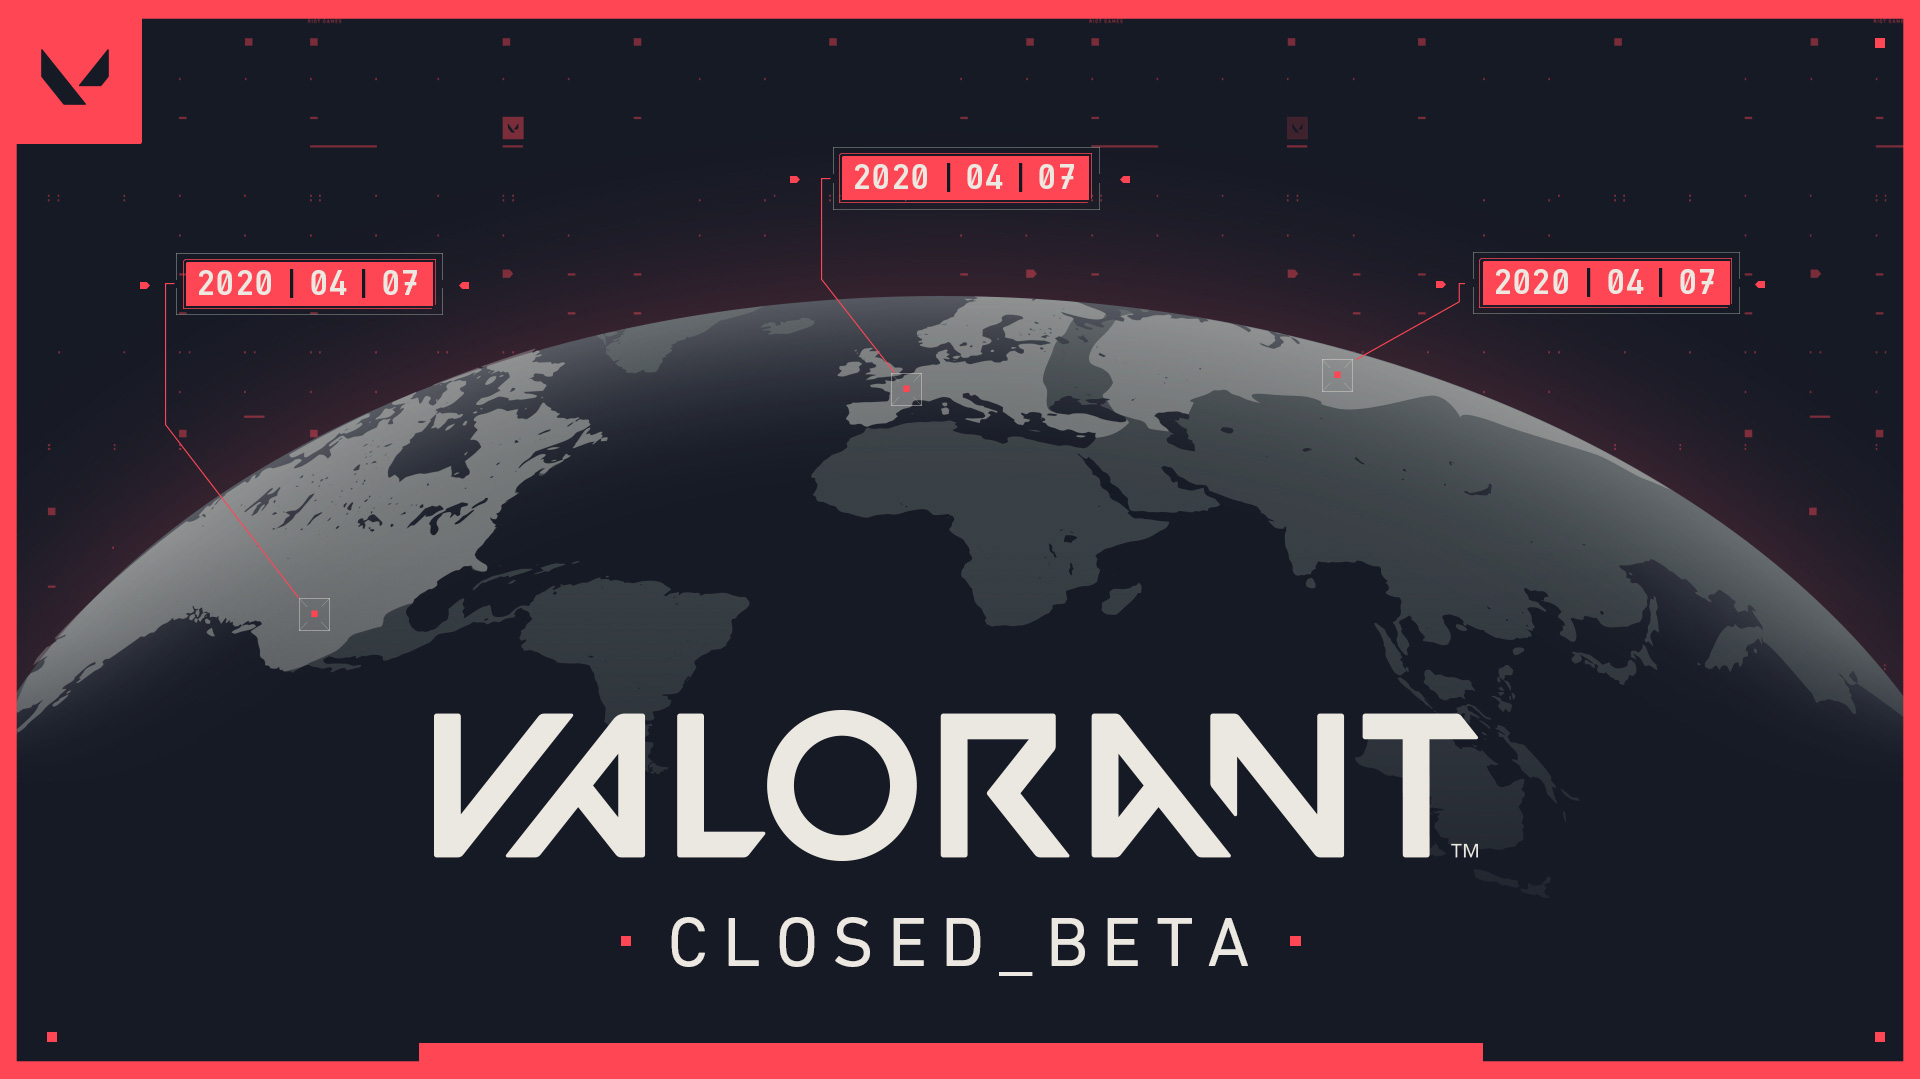 Valorant_Beta_Announce_1Map_6x9_1920x1080-in-article-image.jpg